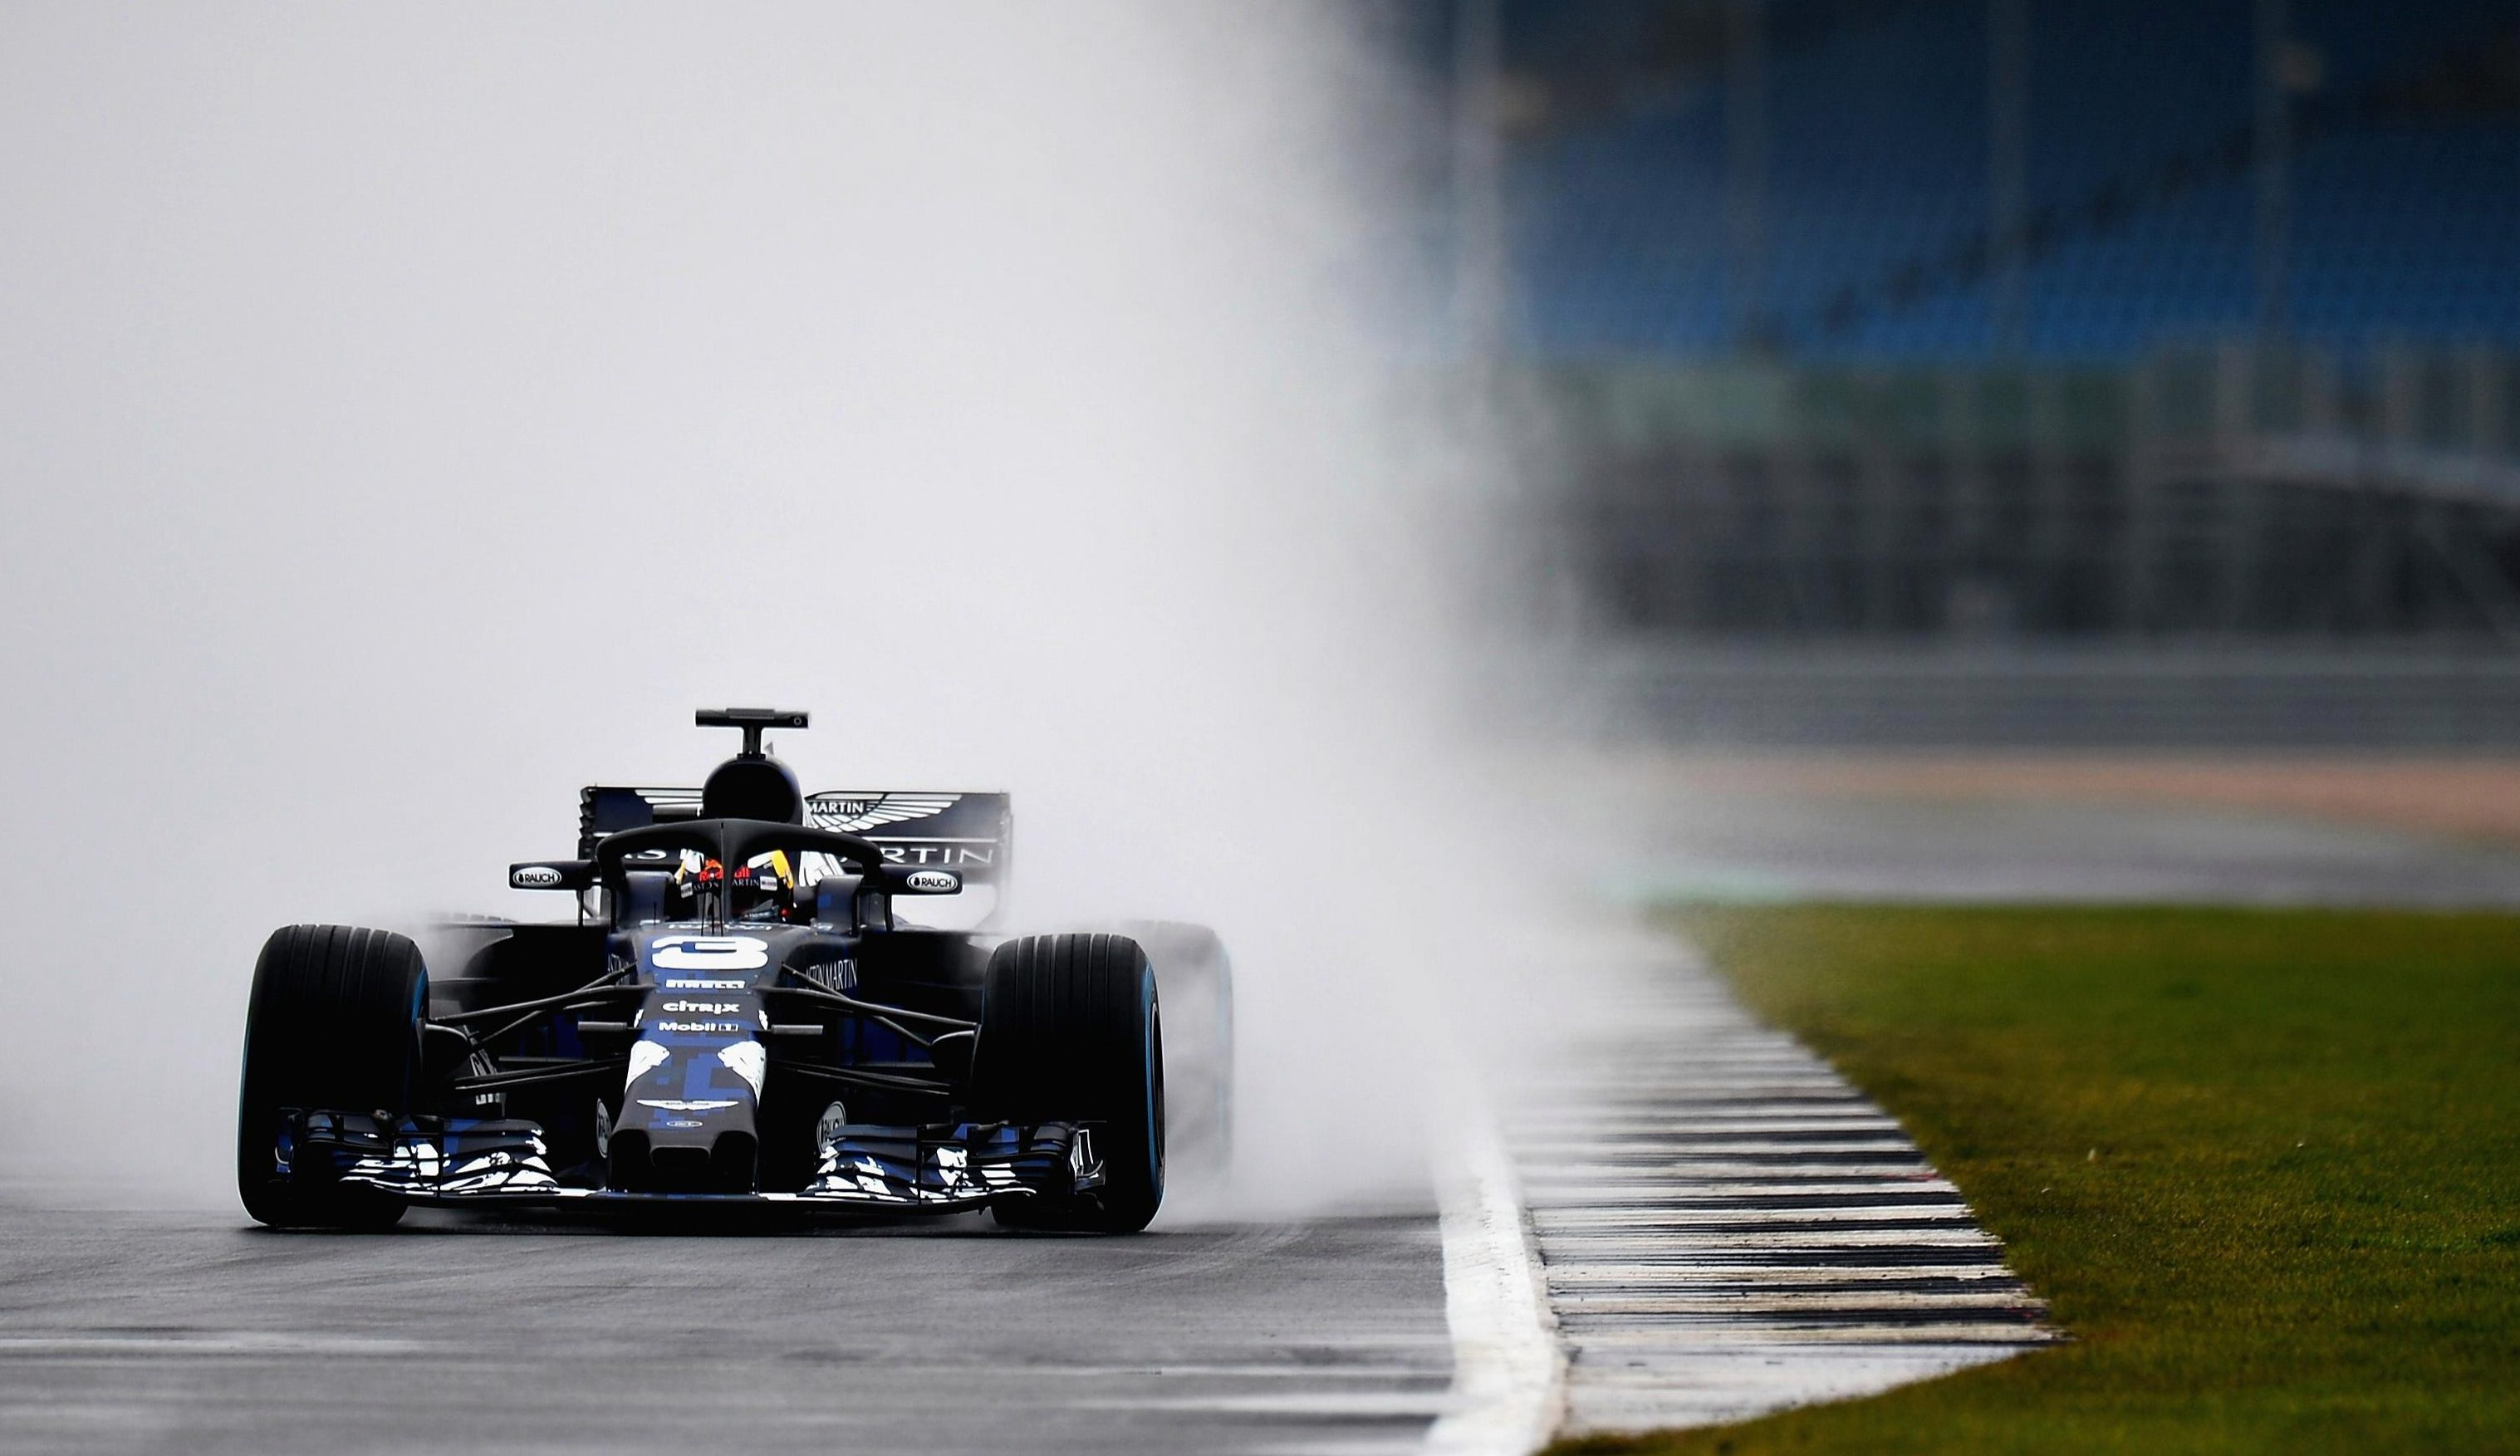 Ricciardo was driving the car at a wet Silverstone circuit for private filming on Monday